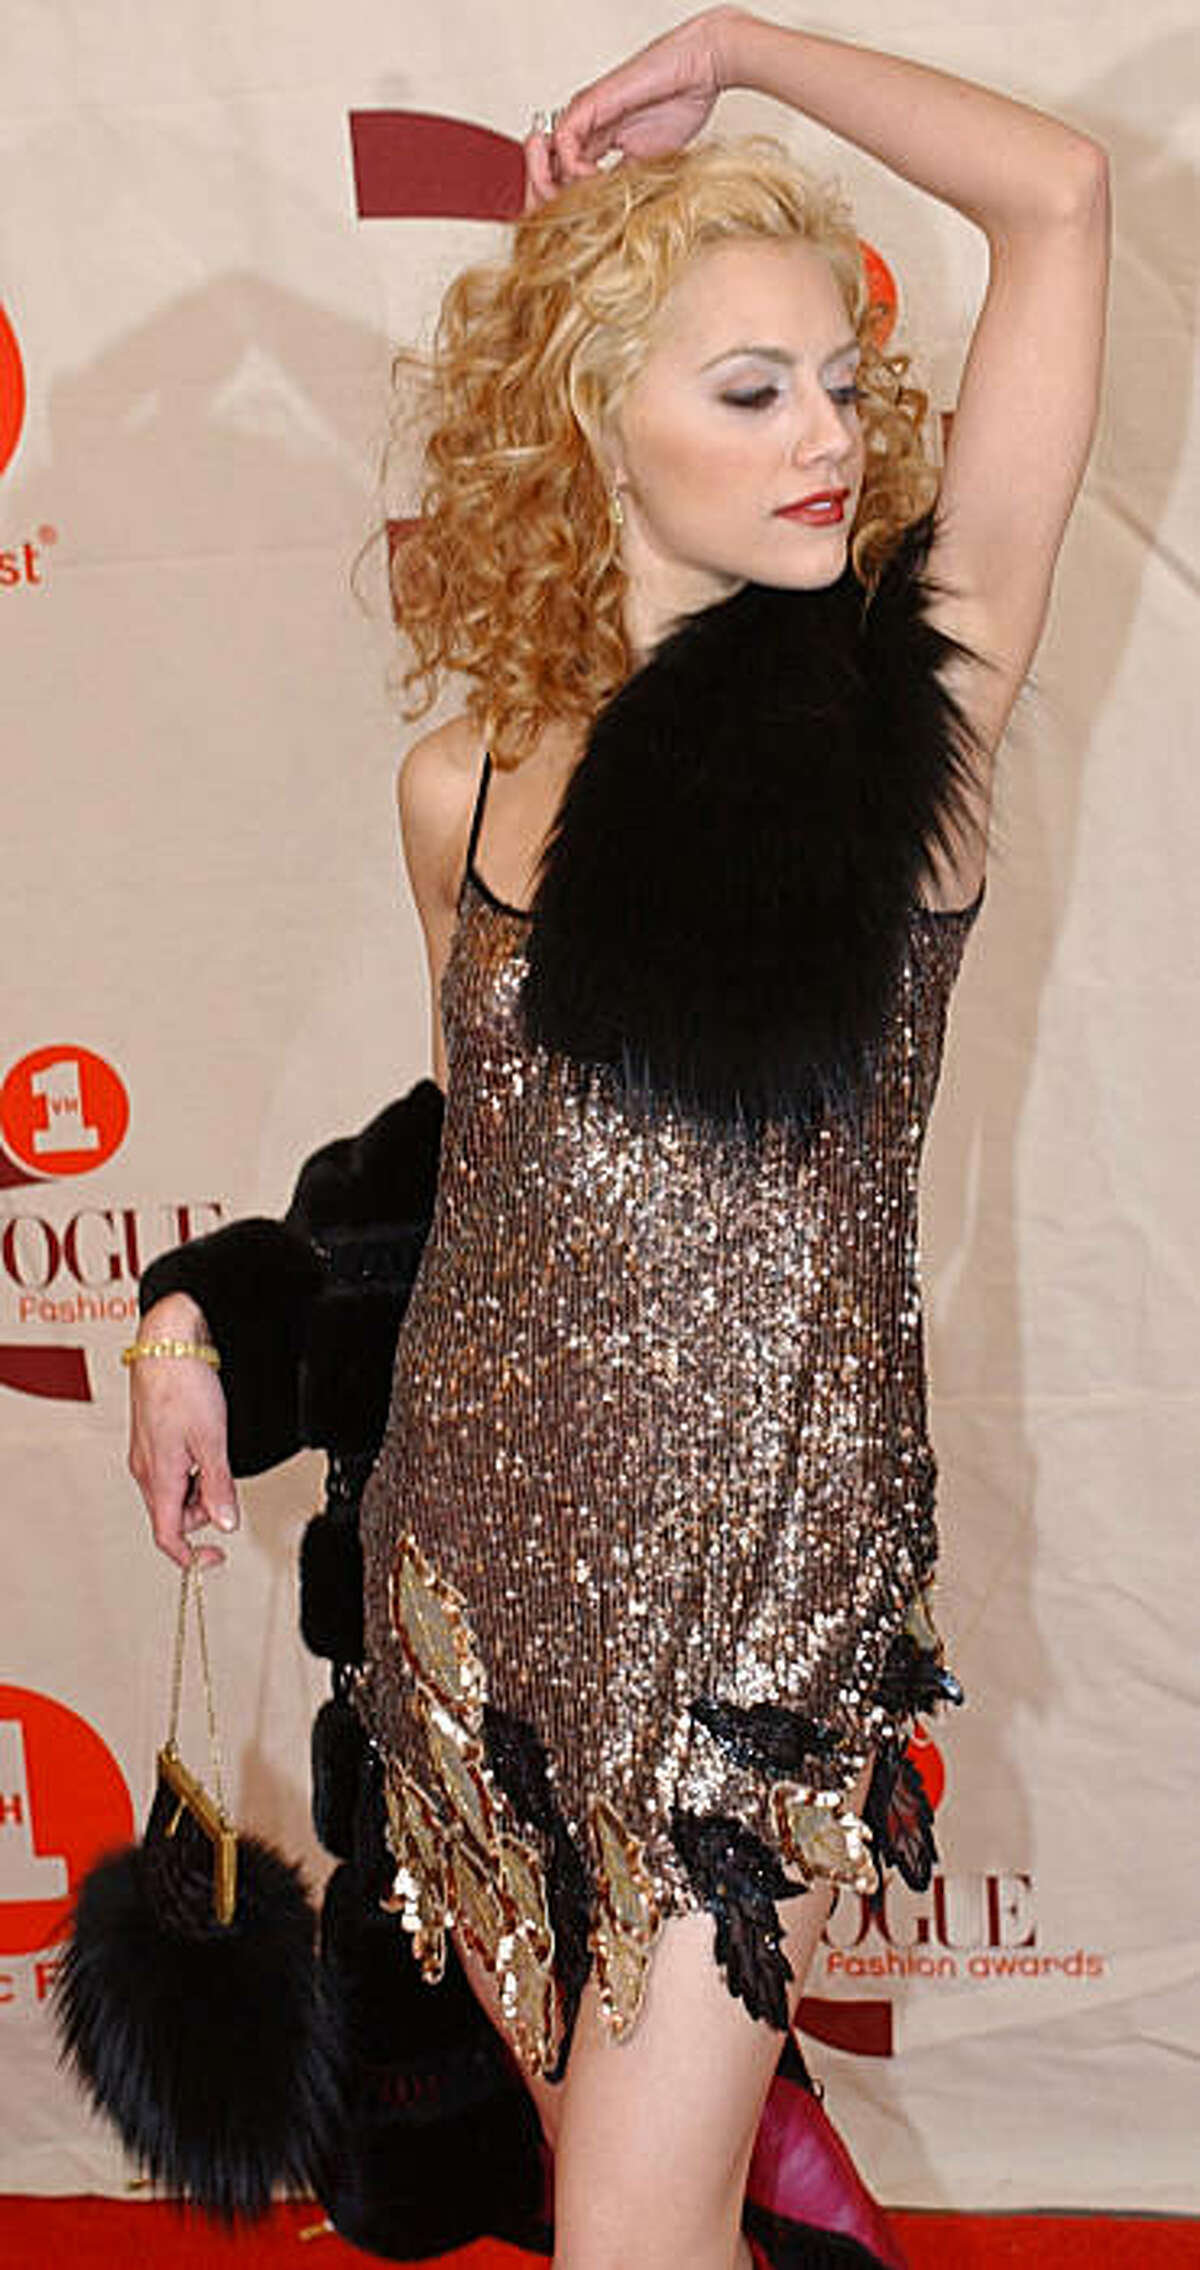 FILE - In this Oct. 15, 2002 file photo, actress Brittany Murphy arrives for the 2002 VH1/Vogue Fashion Awards at New York's Radio City Music Hall. A Los Angeles hospital spokeswoman says actress Brittany Murphy has died. She was 32. (AP Photo/Suzanne Plunkett, File)